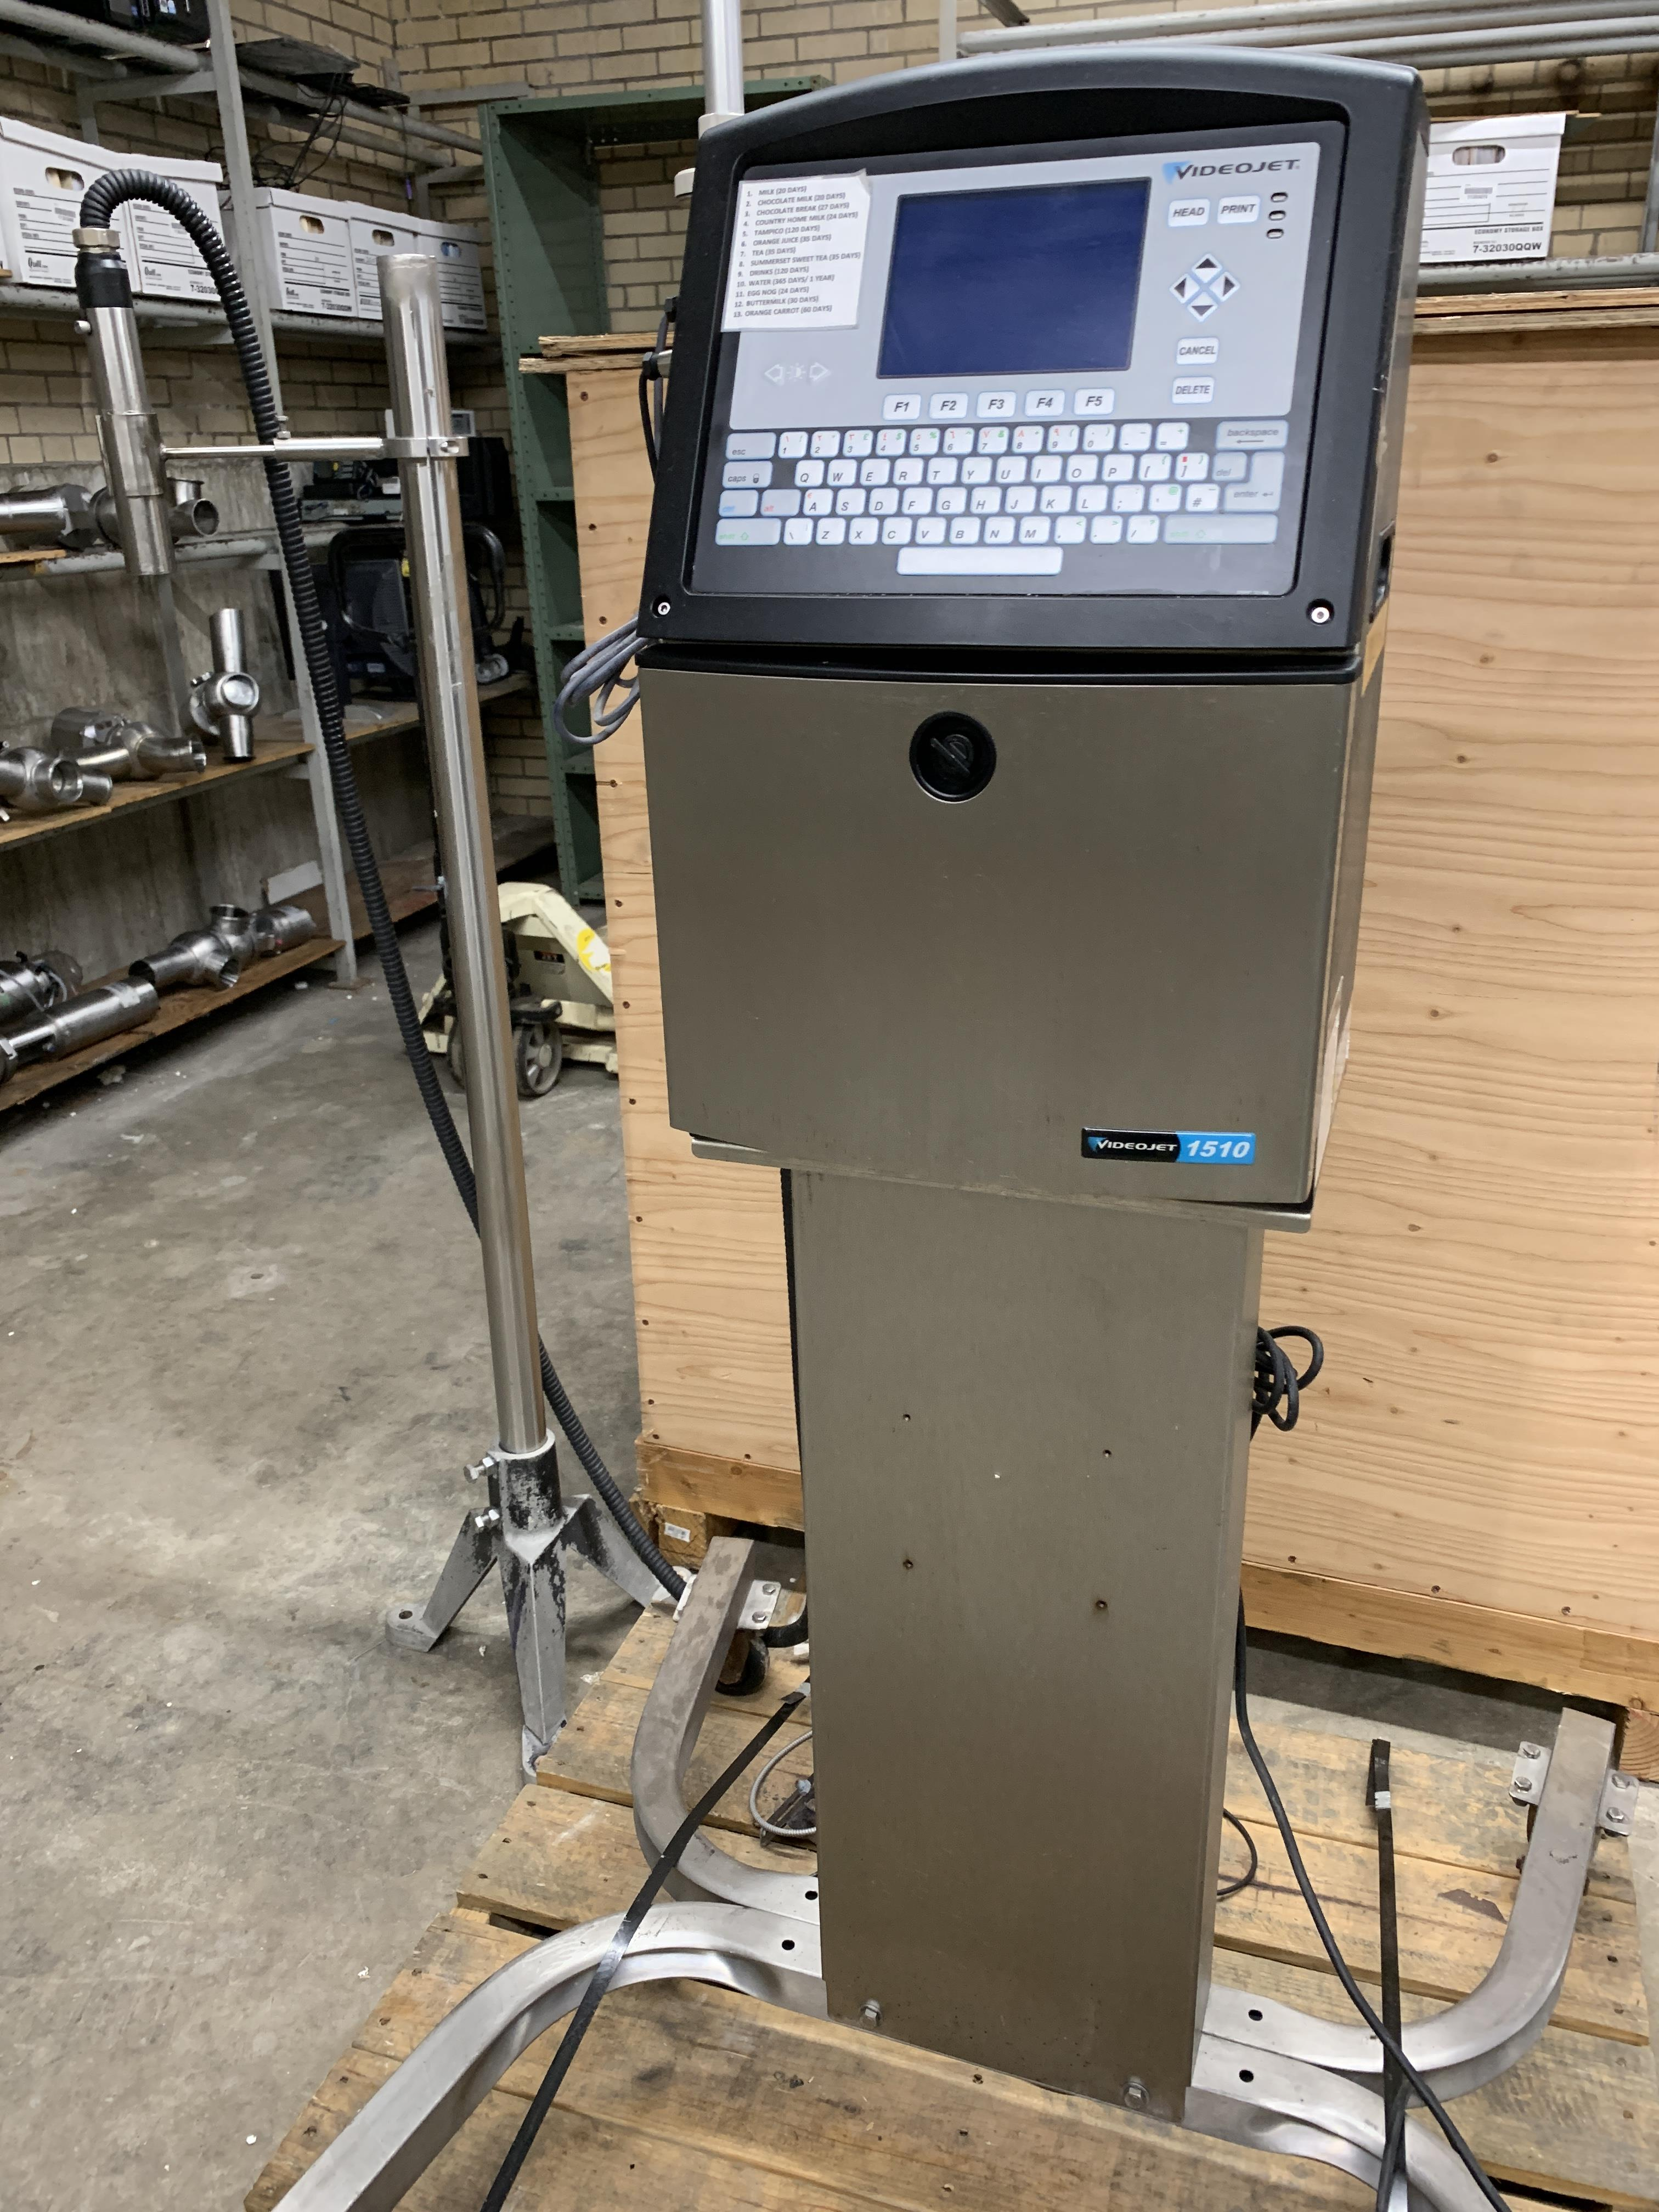 Lot 21A - 21A 1 Video Jet Ink Jet Coder Model 1510, S/N 0830801C11ZH (Located in Pittsburgh, PA)